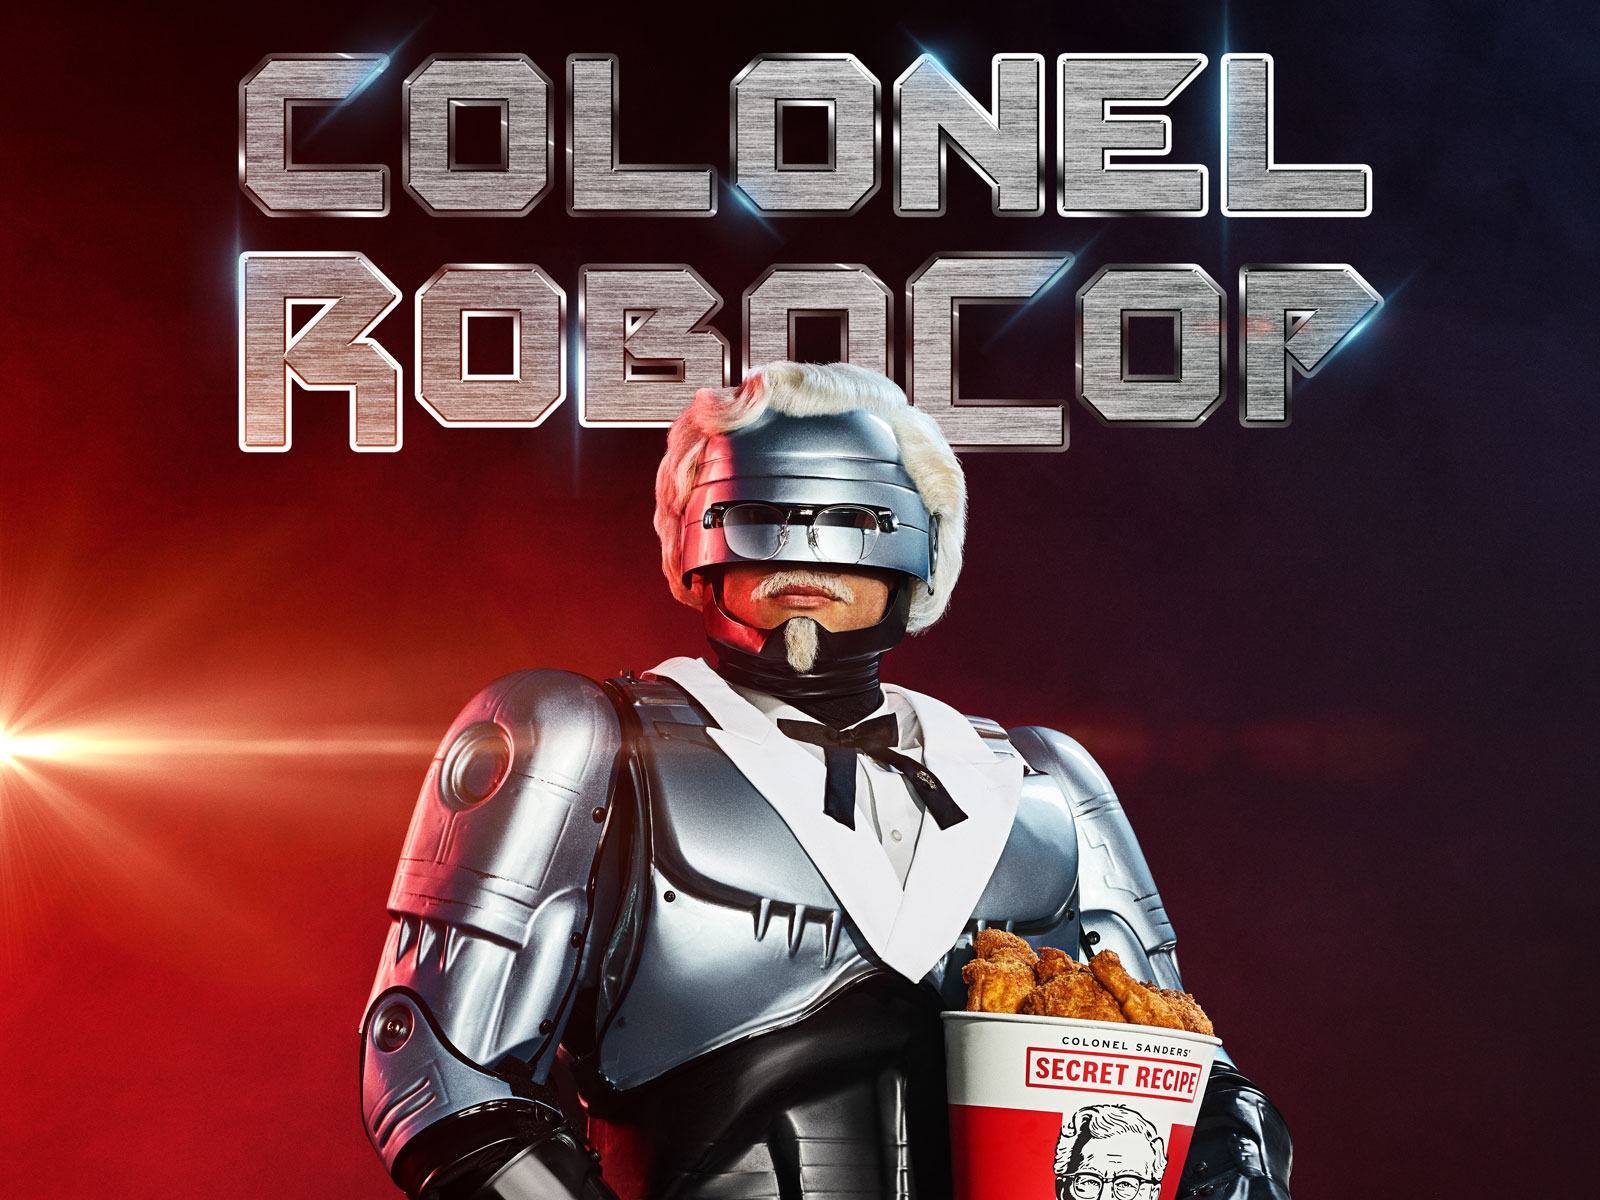 KFC Hires RoboCop as Colonel Sanders, Doubles Down on Secret Recipe Security